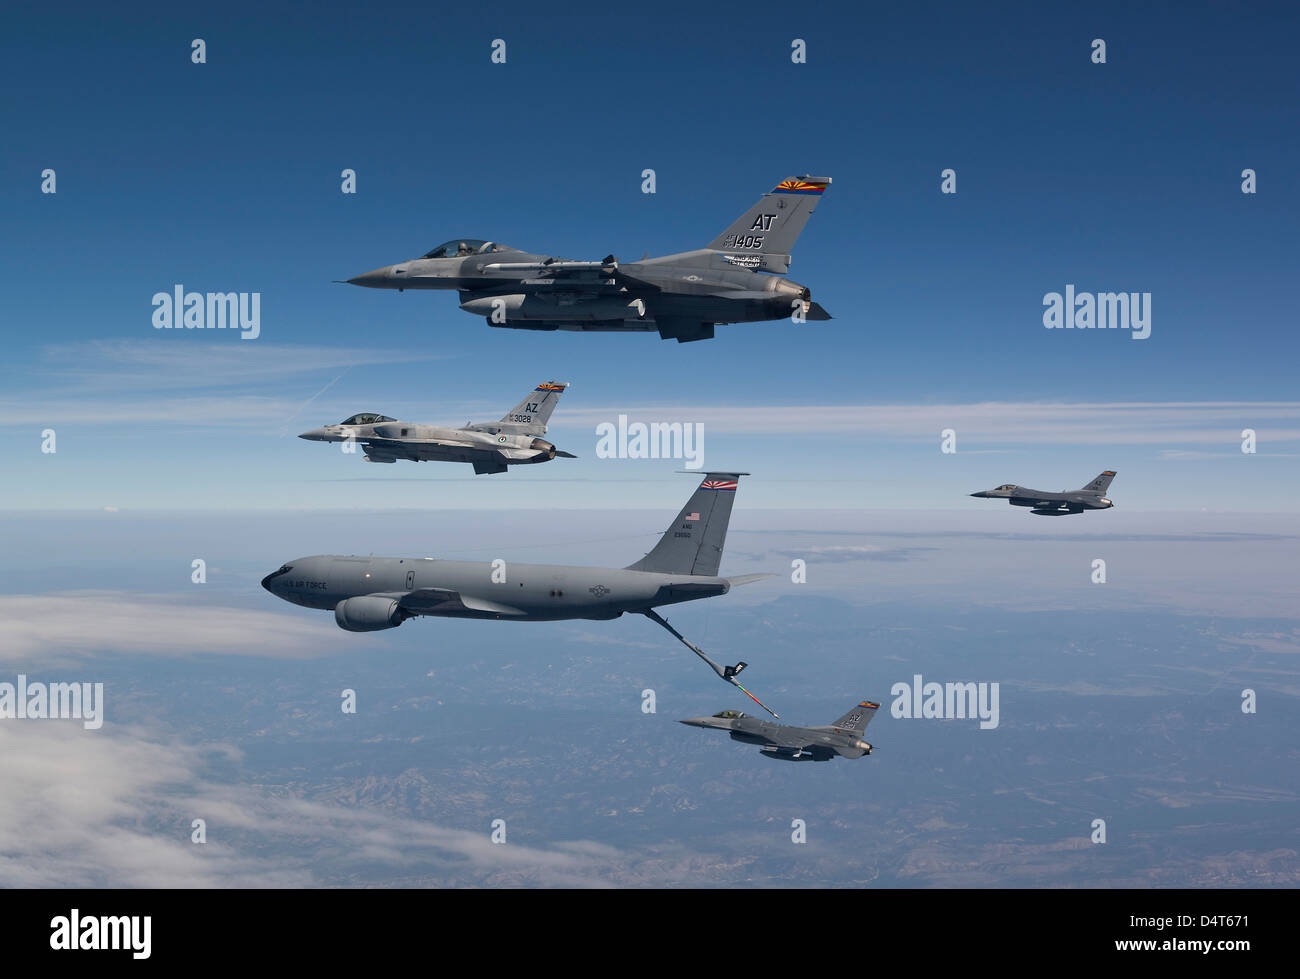 Four F-16's and a KC-135 from the Arizona Air National Guard fly in formation during a training mission over - Stock Image